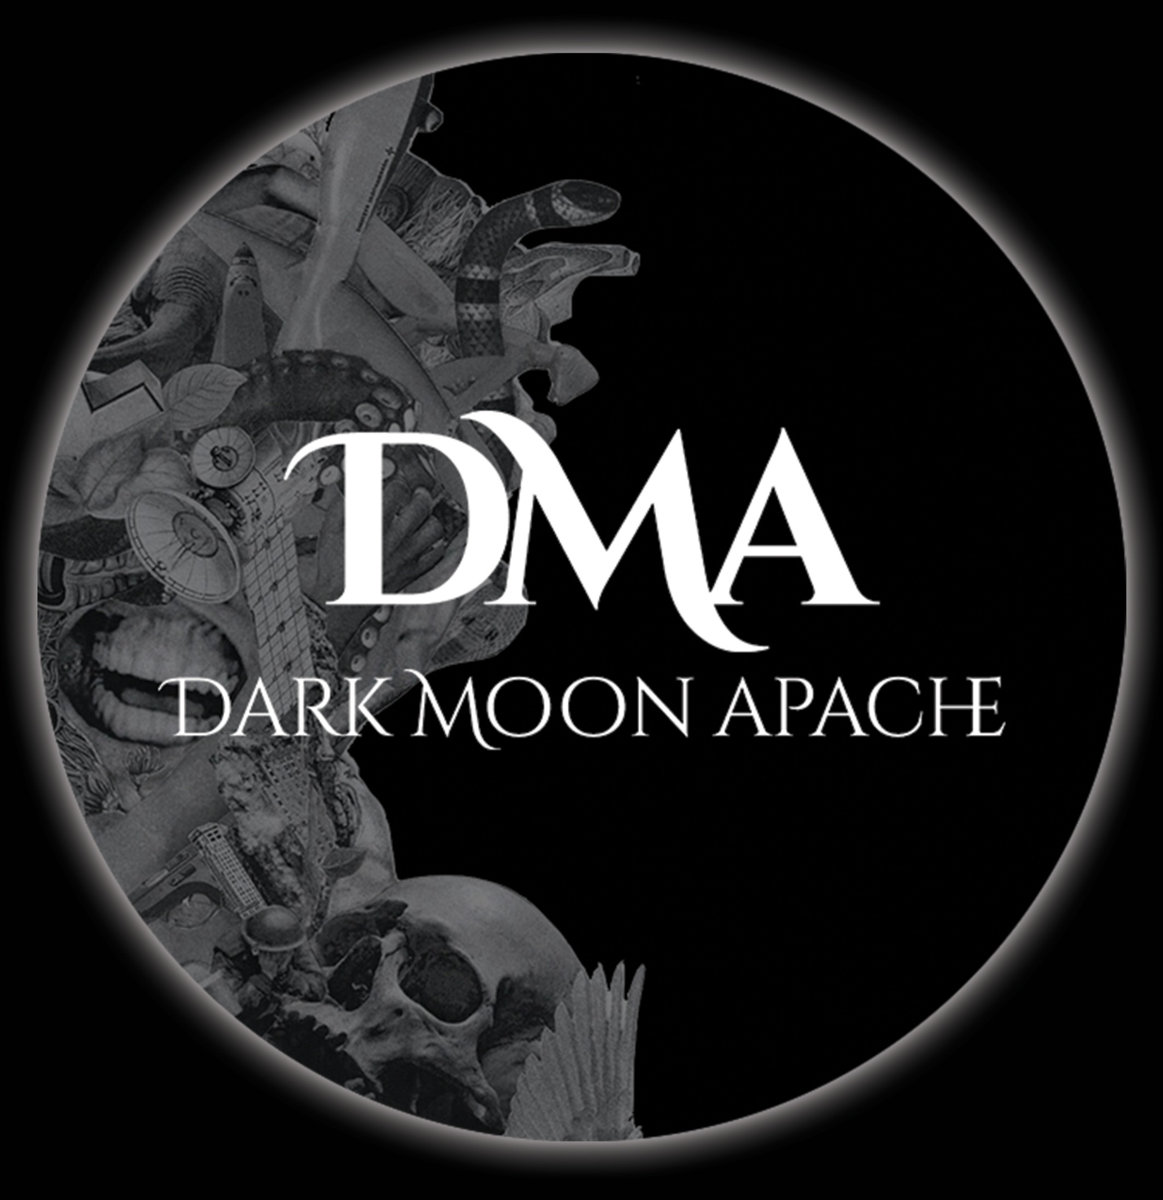 Dark Moon Apache – Dark Moon Apache